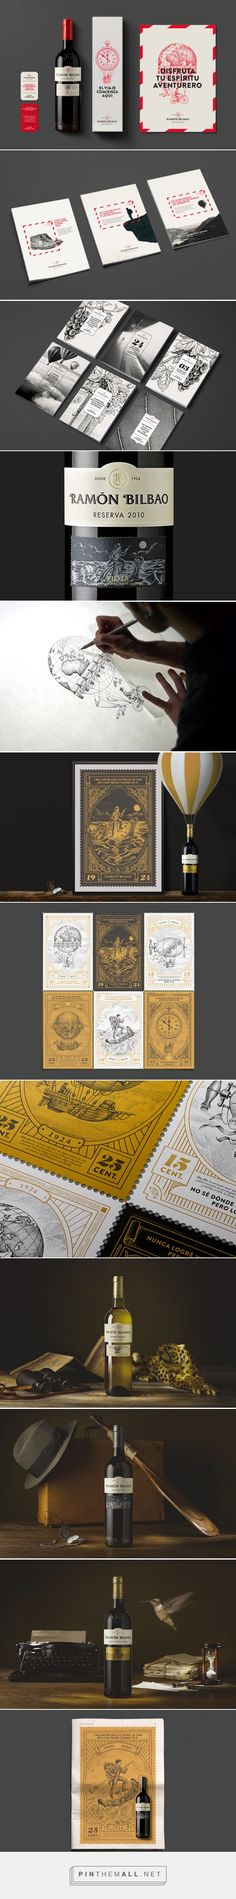 The Taste of Adventure #wine #packaging designed by Interbrand​ - http://www.packagingoftheworld.com/2015/05/the-taste-of-adventure.html